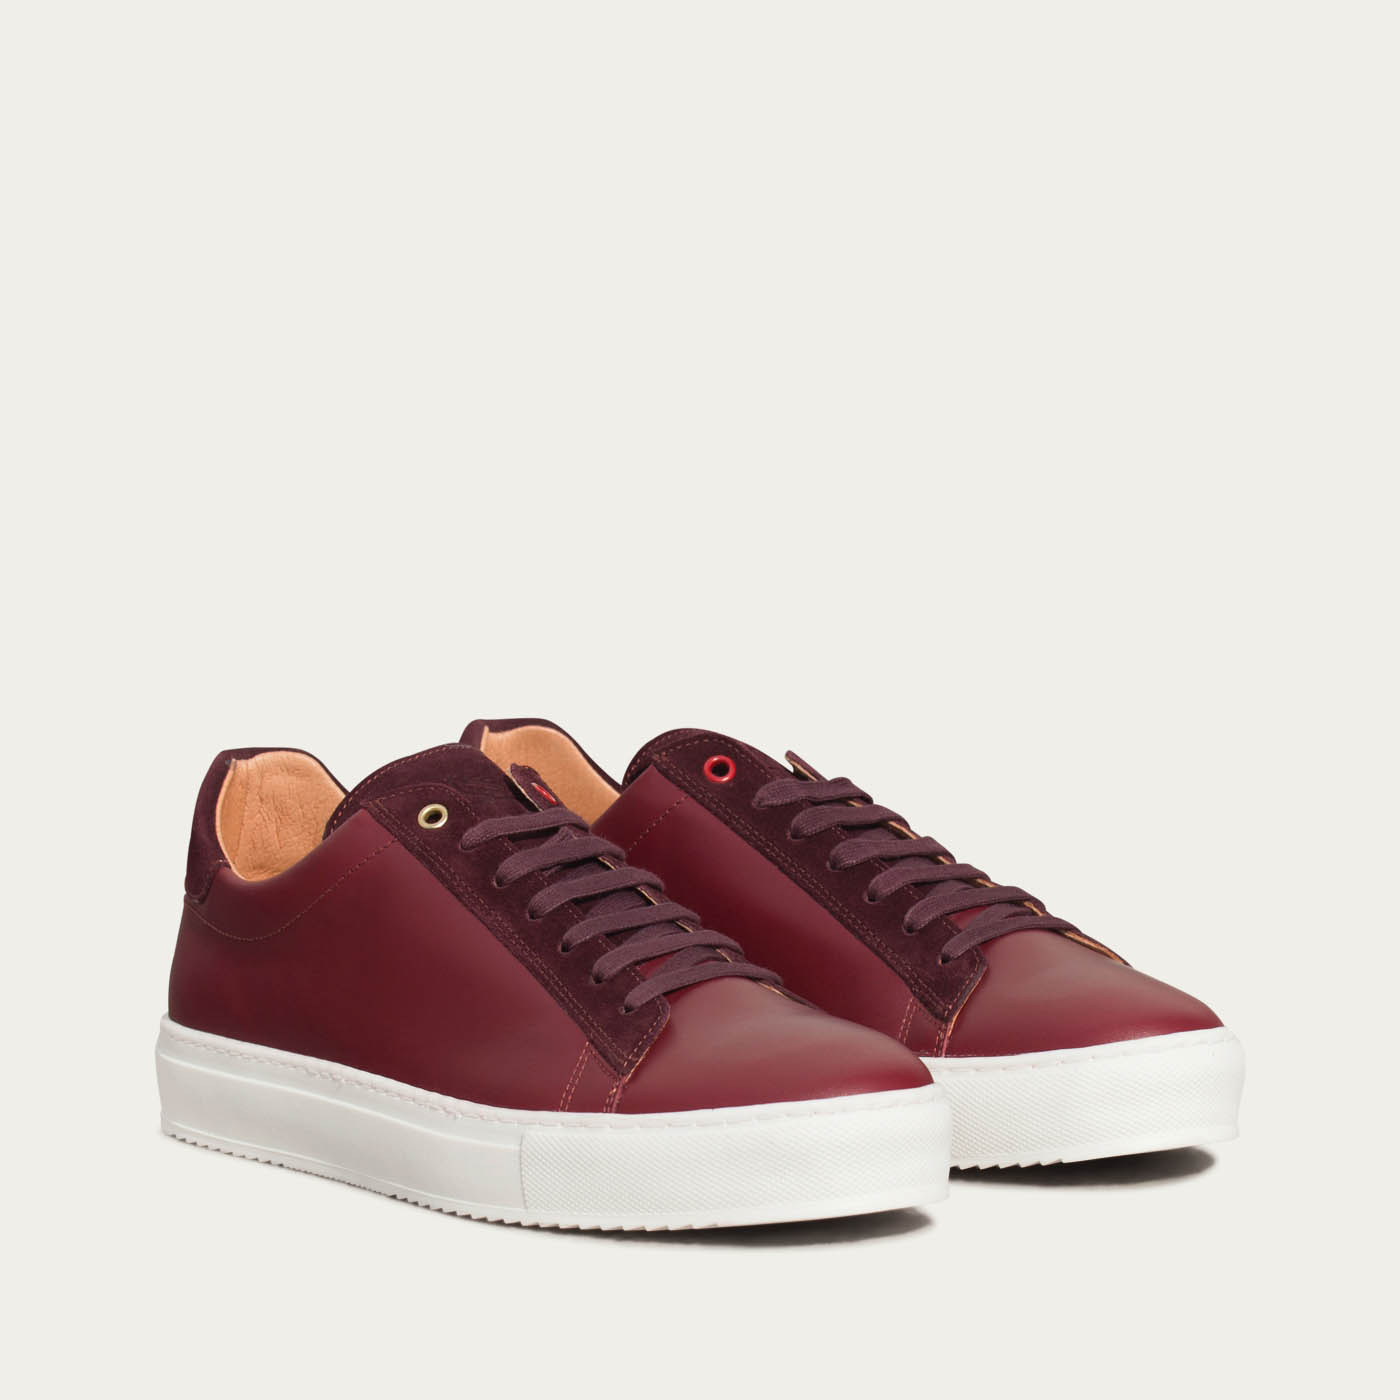 Burgundy Leather Taranta Sneakers    1